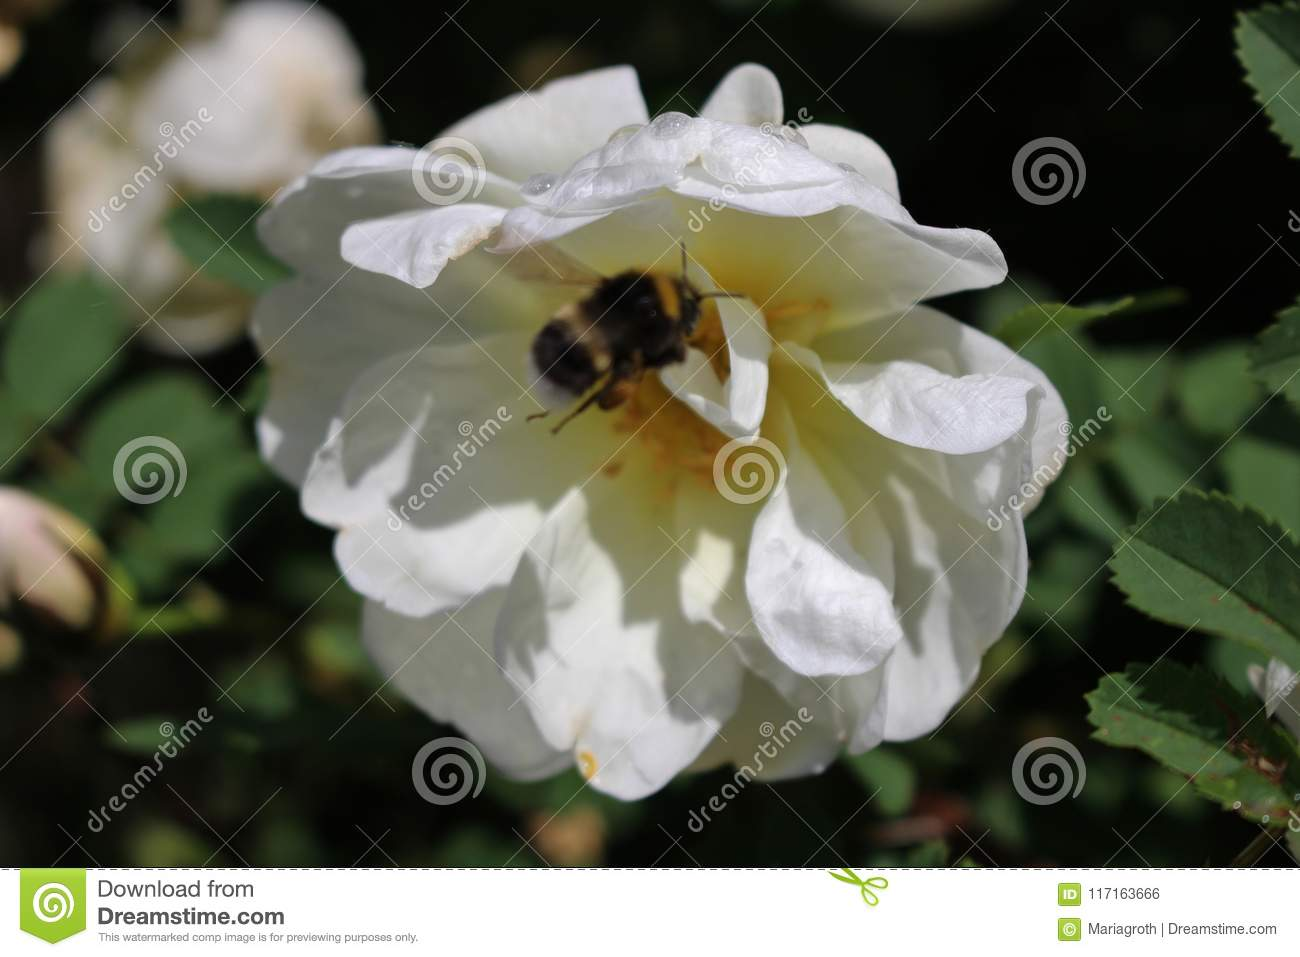 The White Rose Of Finland Stock Photo Image Of Finland 117163666